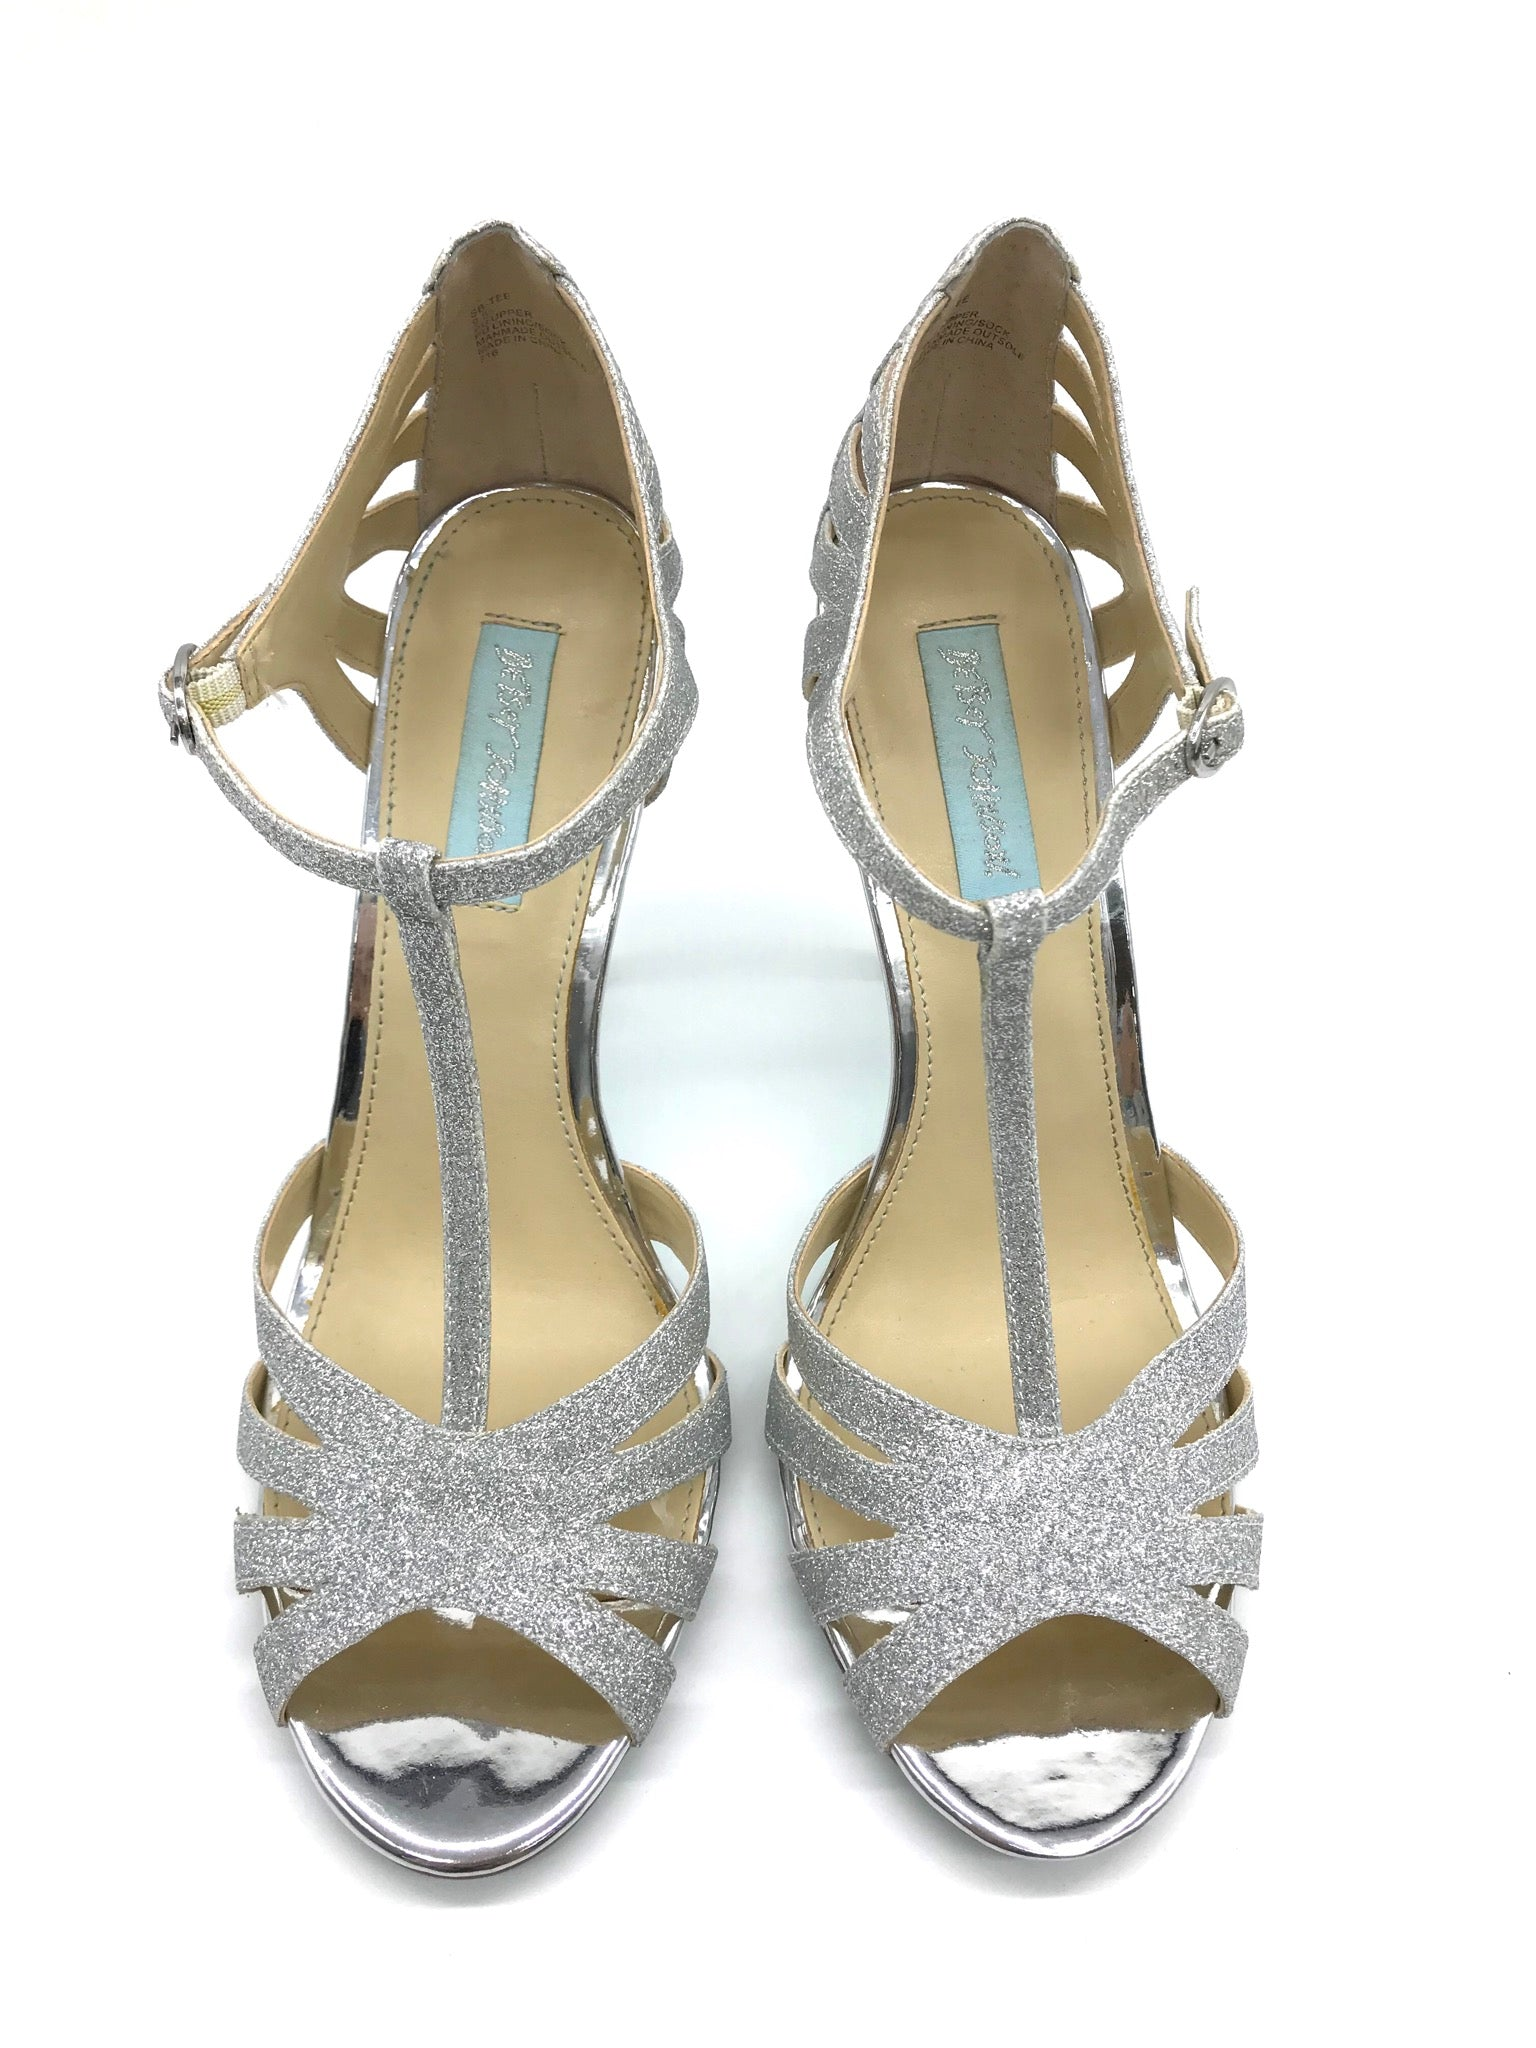 Primary Photo - BRAND: BETSEY JOHNSON <BR>STYLE: SANDALS HIGH <BR>COLOR: SILVER <BR>SIZE: 9.5 <BR>SKU: 262-26275-62519<BR>IN NEW CONDITION - AS IS